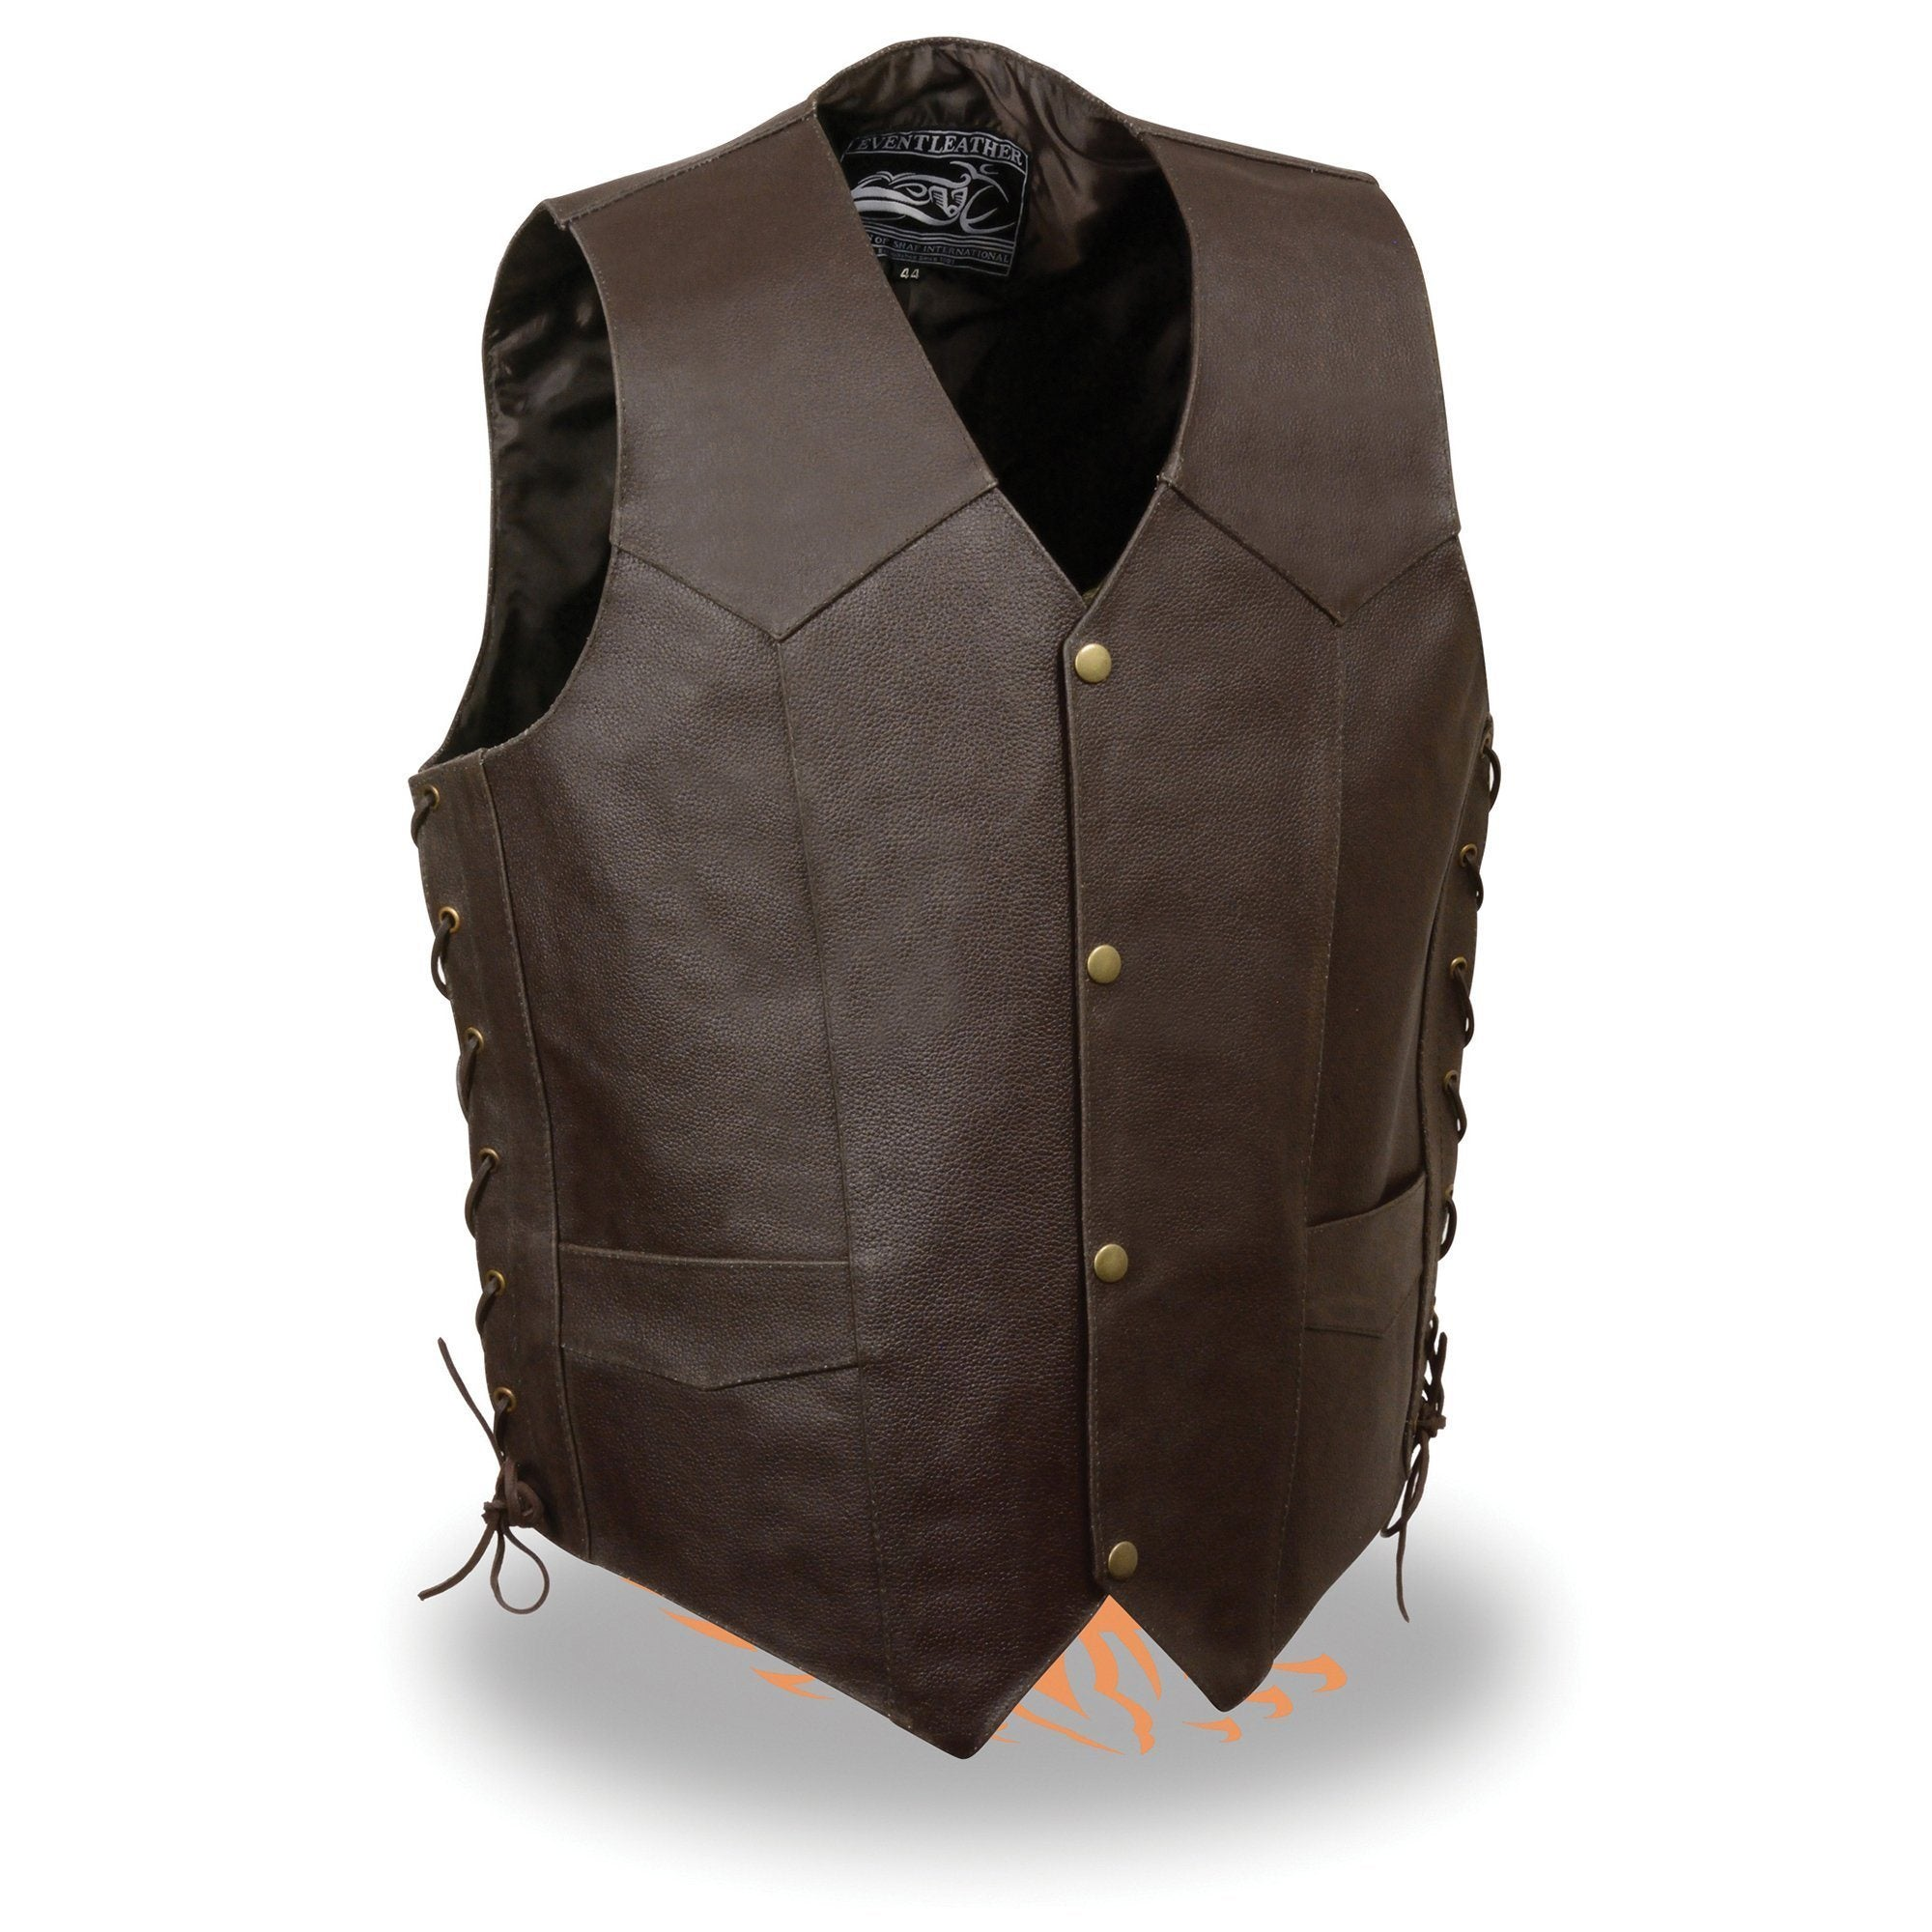 Event Leather ELM3900 'Live to Ride' Men's Brown Leather Vest with